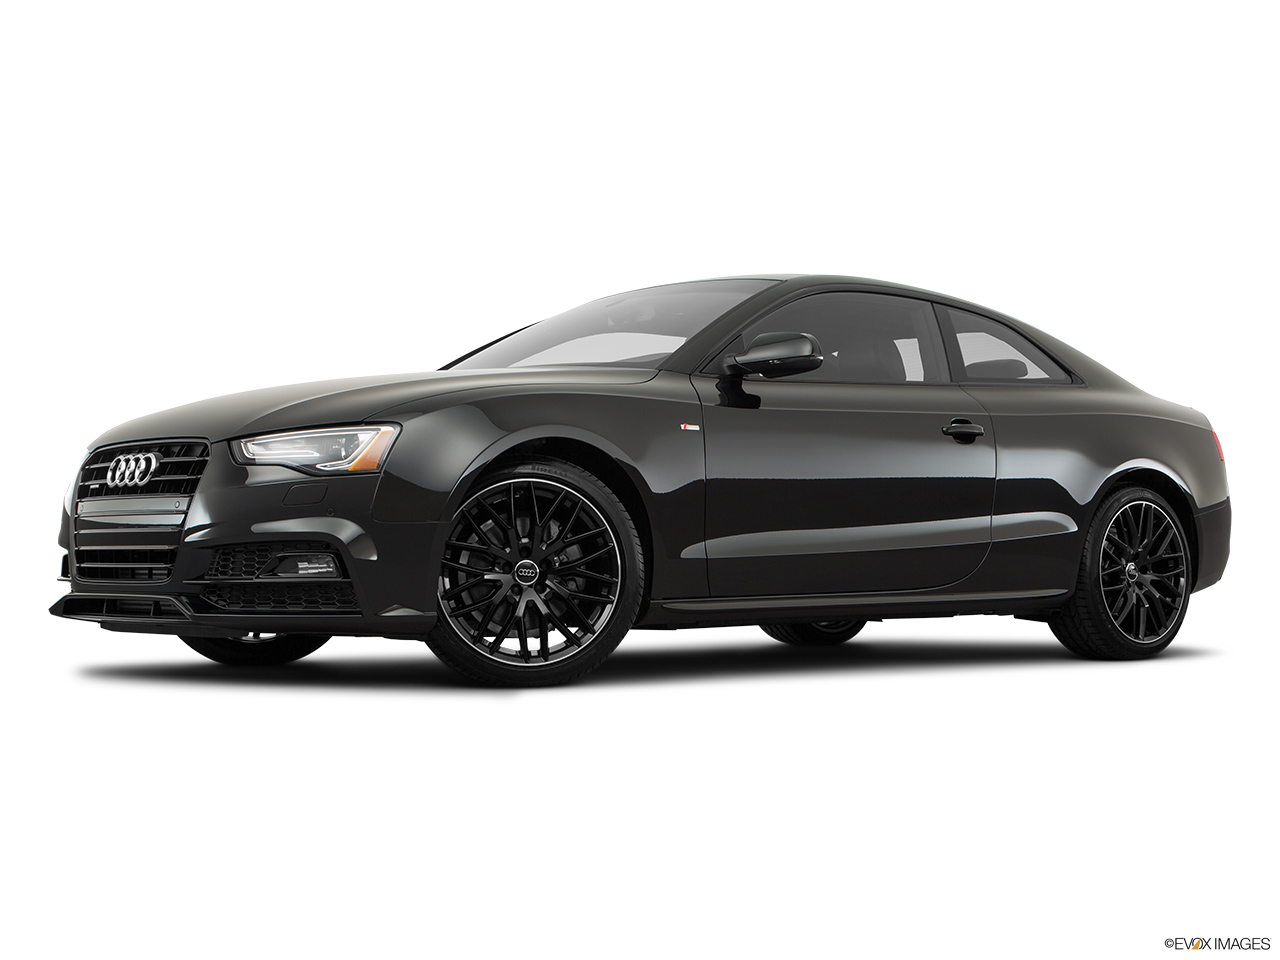 2017 Audi A5 Sport 2.0 TFSI Low/wide front 5/8.